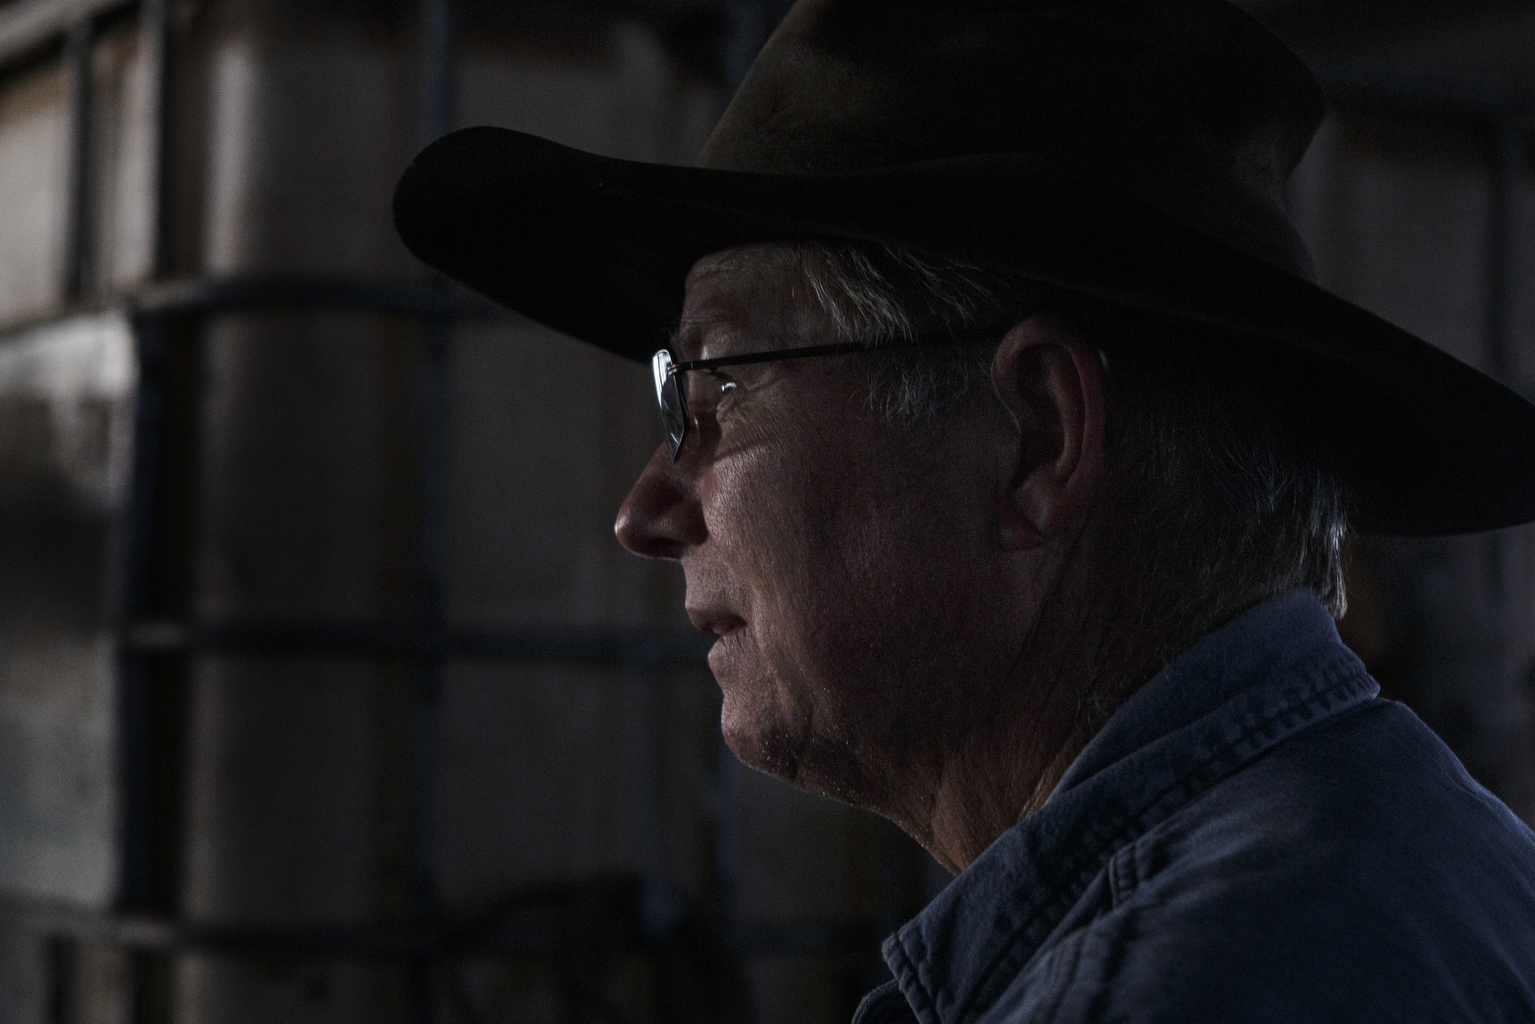 """""""When I'm gone, I don't know how Ryan is going to work it [the ranch] by himself,"""" Frank said.  The worry is that cement roads will replace the seemingly endless gravel roads. The worry is that the connection with nature that comes with being stewards of the land will be replaced tract housing and massive housing developments.  The worry is that his land, his life's work, and its history, will be forgotten."""